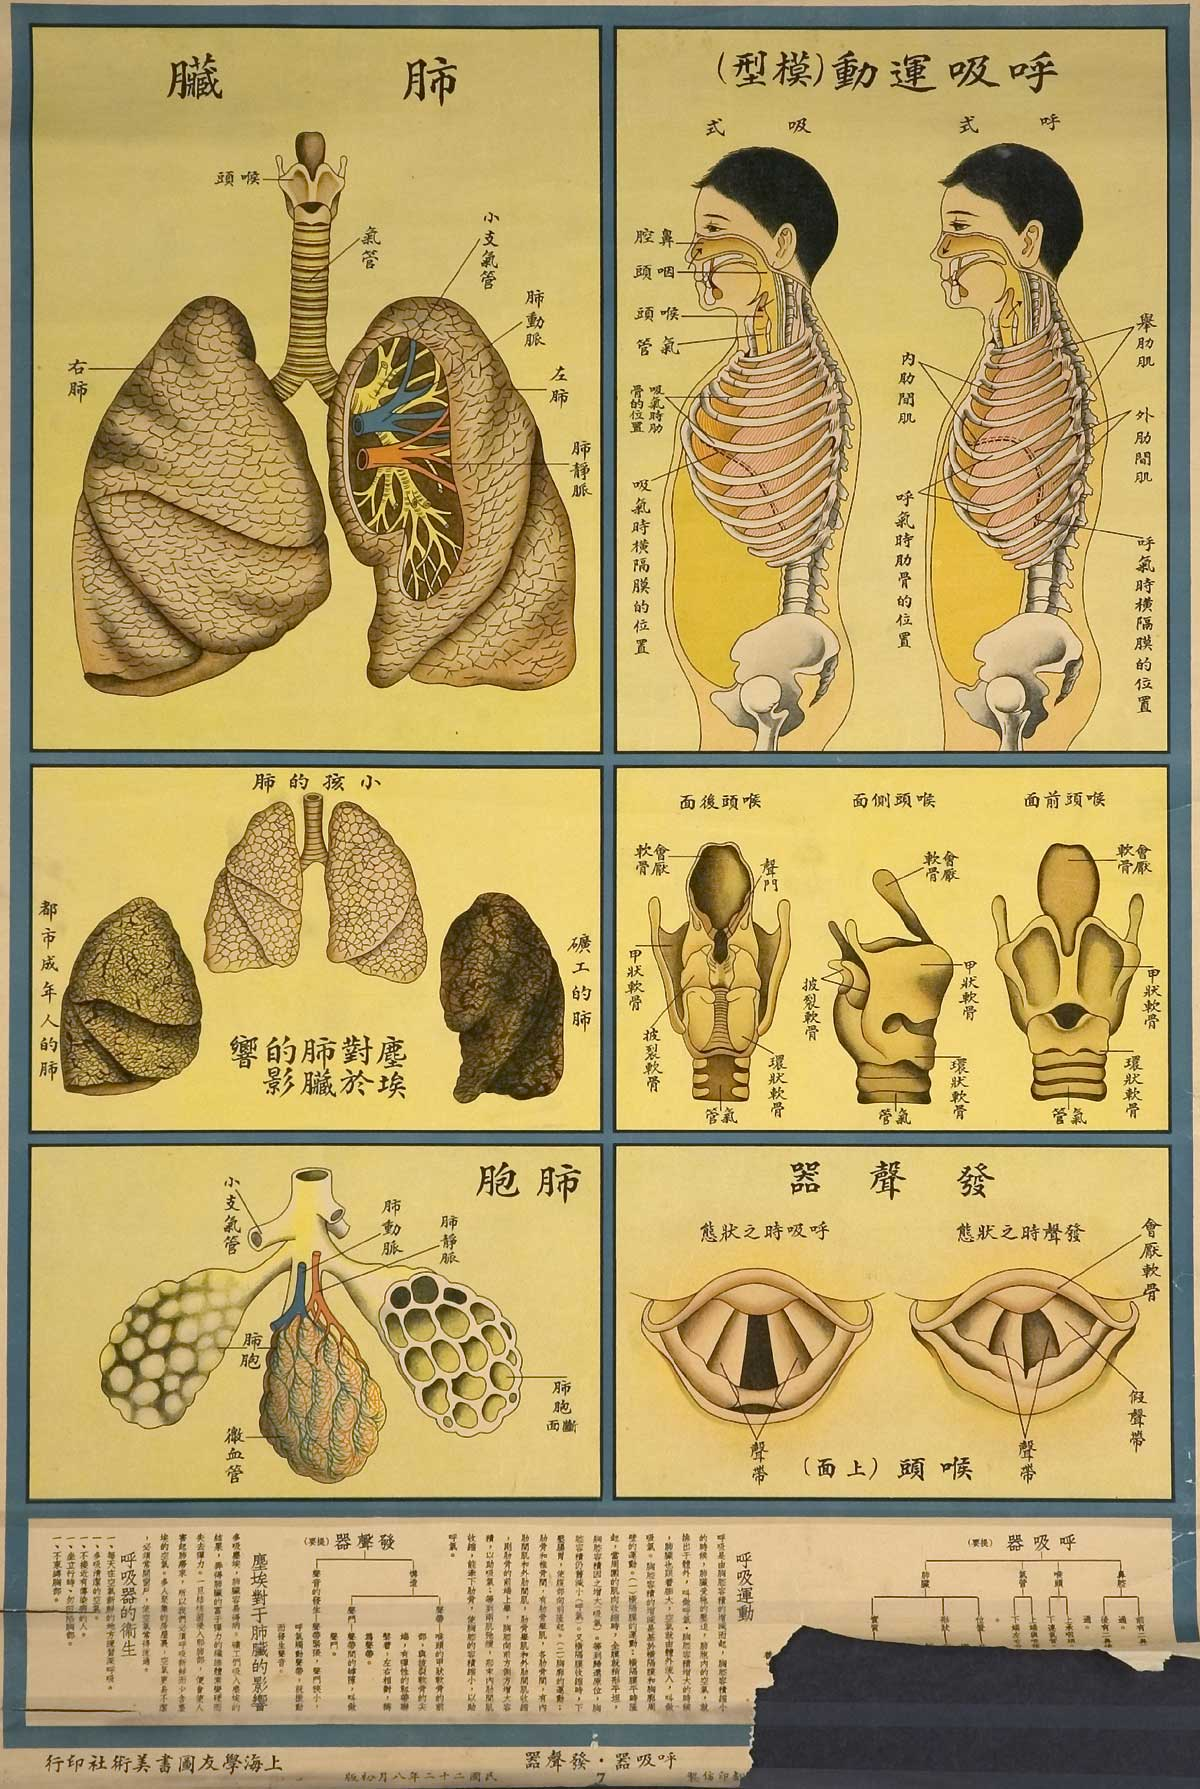 Slide besides Nervous System additionally Measles Viruses Human Respiratory System D Illustration Measles Viruses Human Respiratory System also Red Clover Herbal Remedies as well Ph. on human body respiratory system